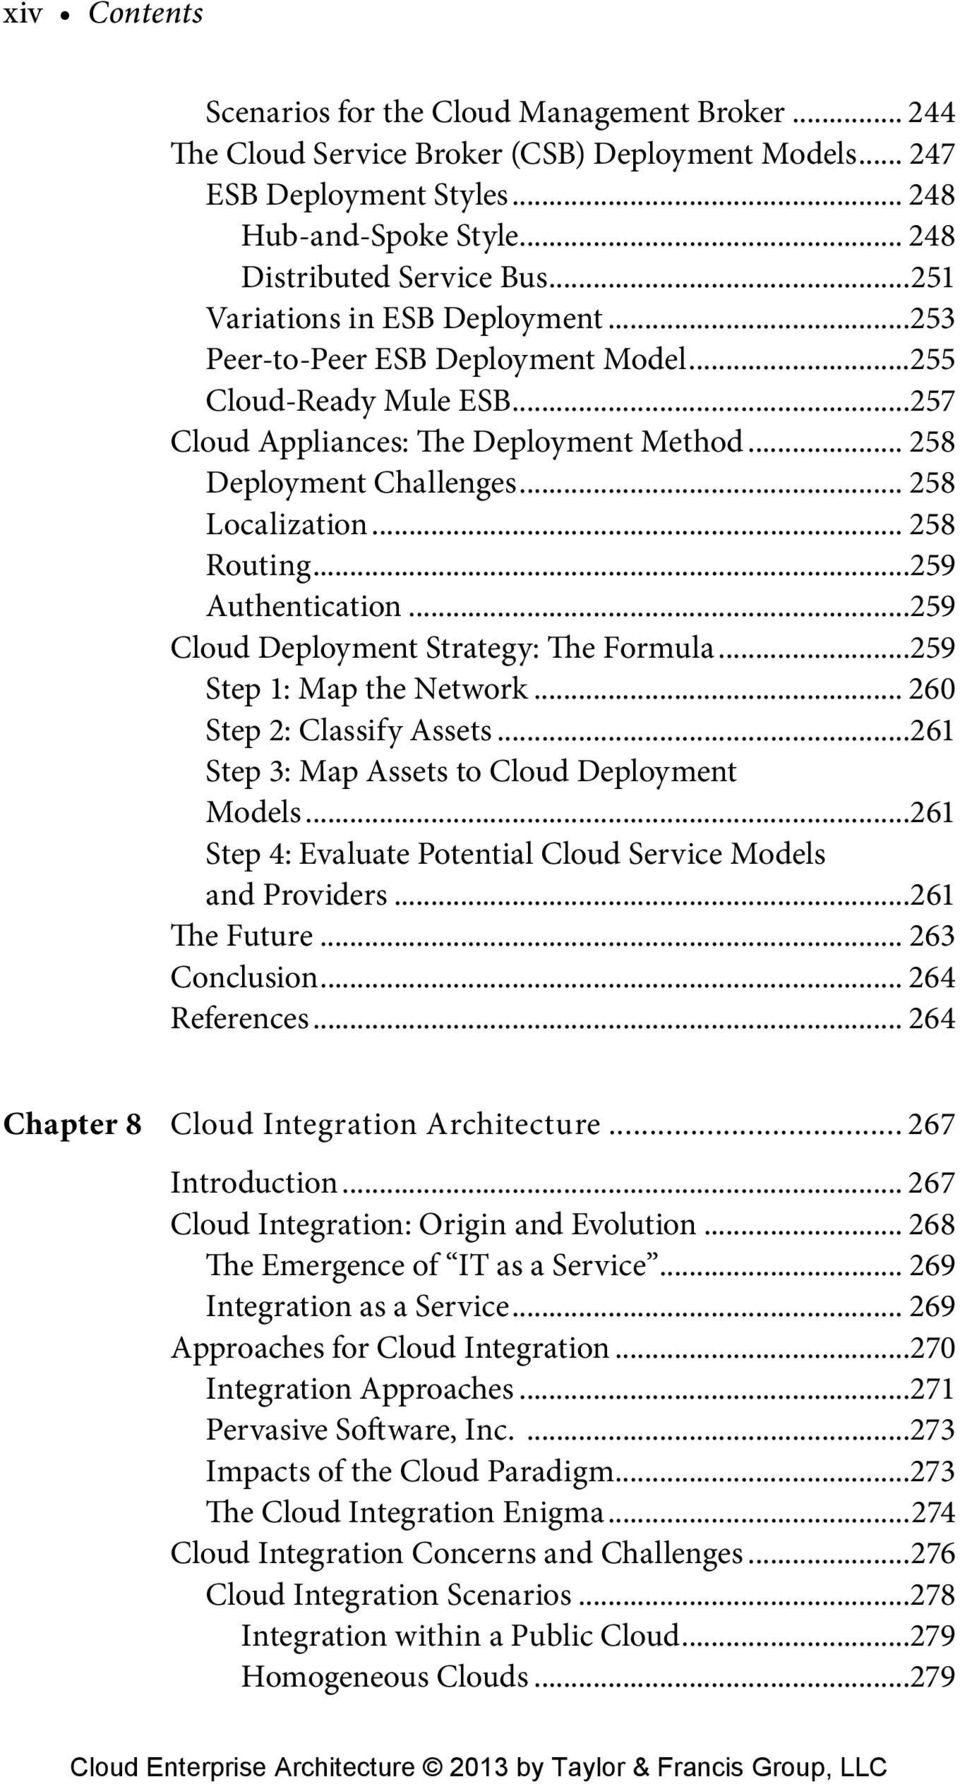 .. 258 Routing...259 Authentication...259 Cloud Deployment Strategy: The Formula...259 Step 1: Map the Network... 260 Step 2: Classify Assets...261 Step 3: Map Assets to Cloud Deployment Models.